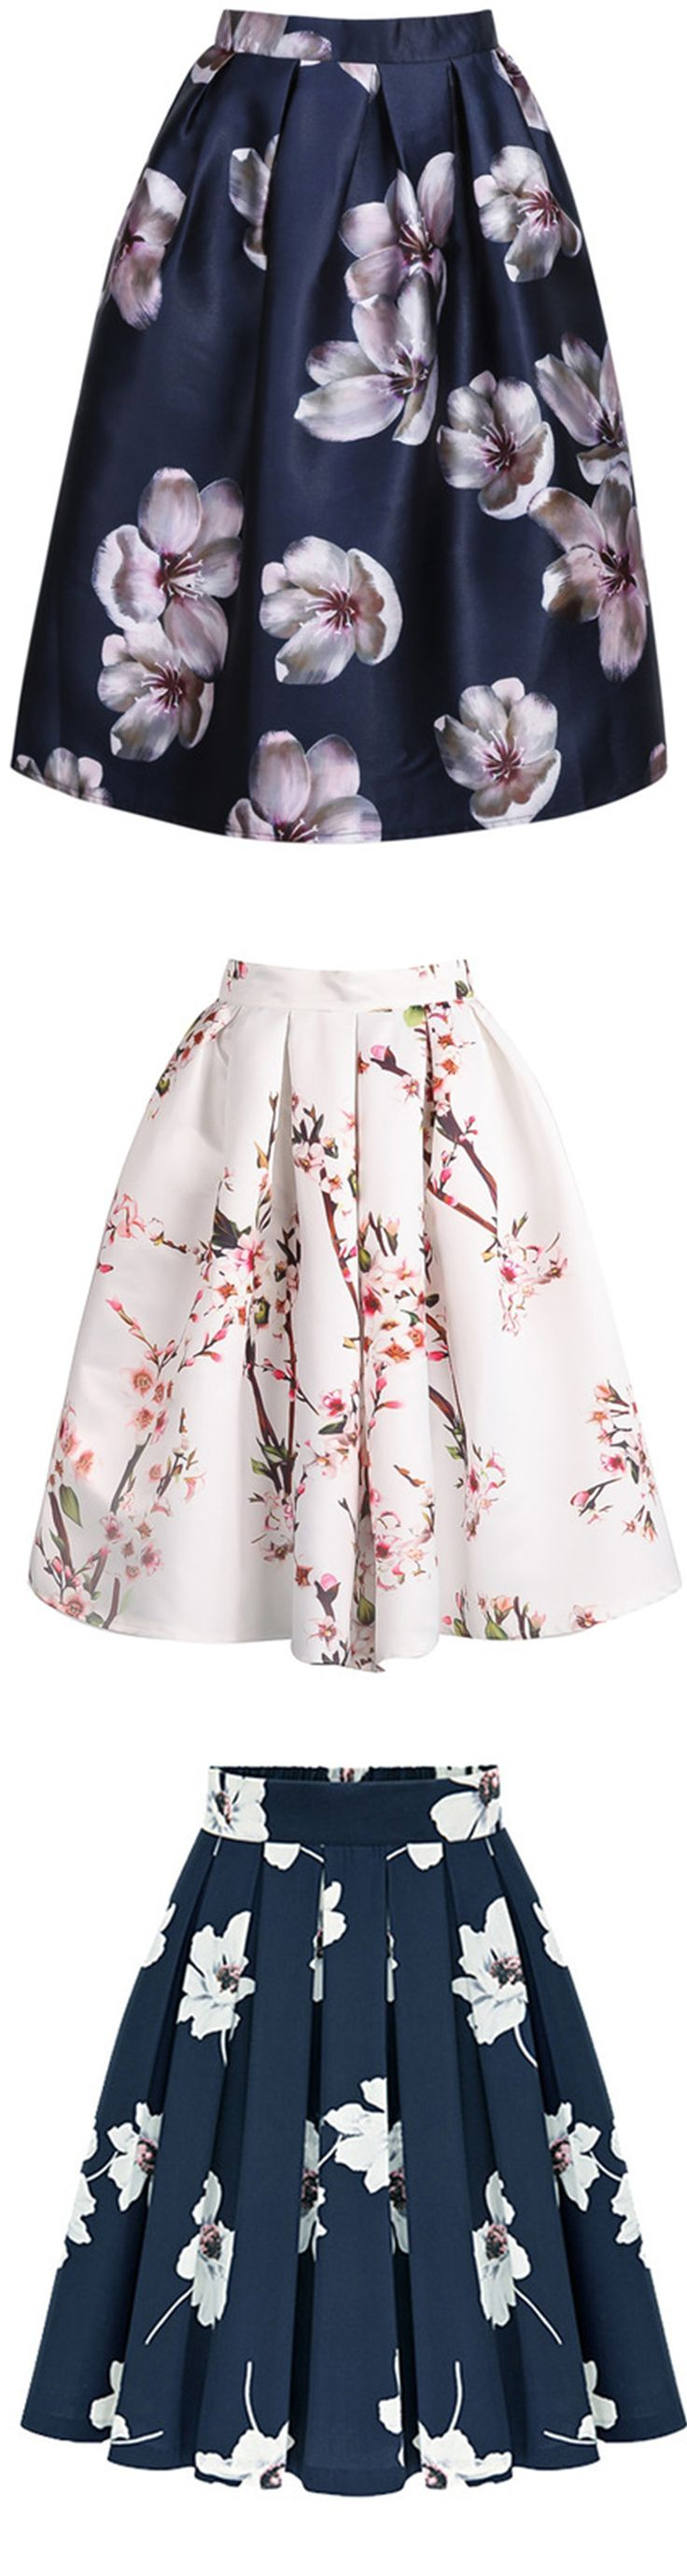 Floral Pleated Skirt - m.shein.com